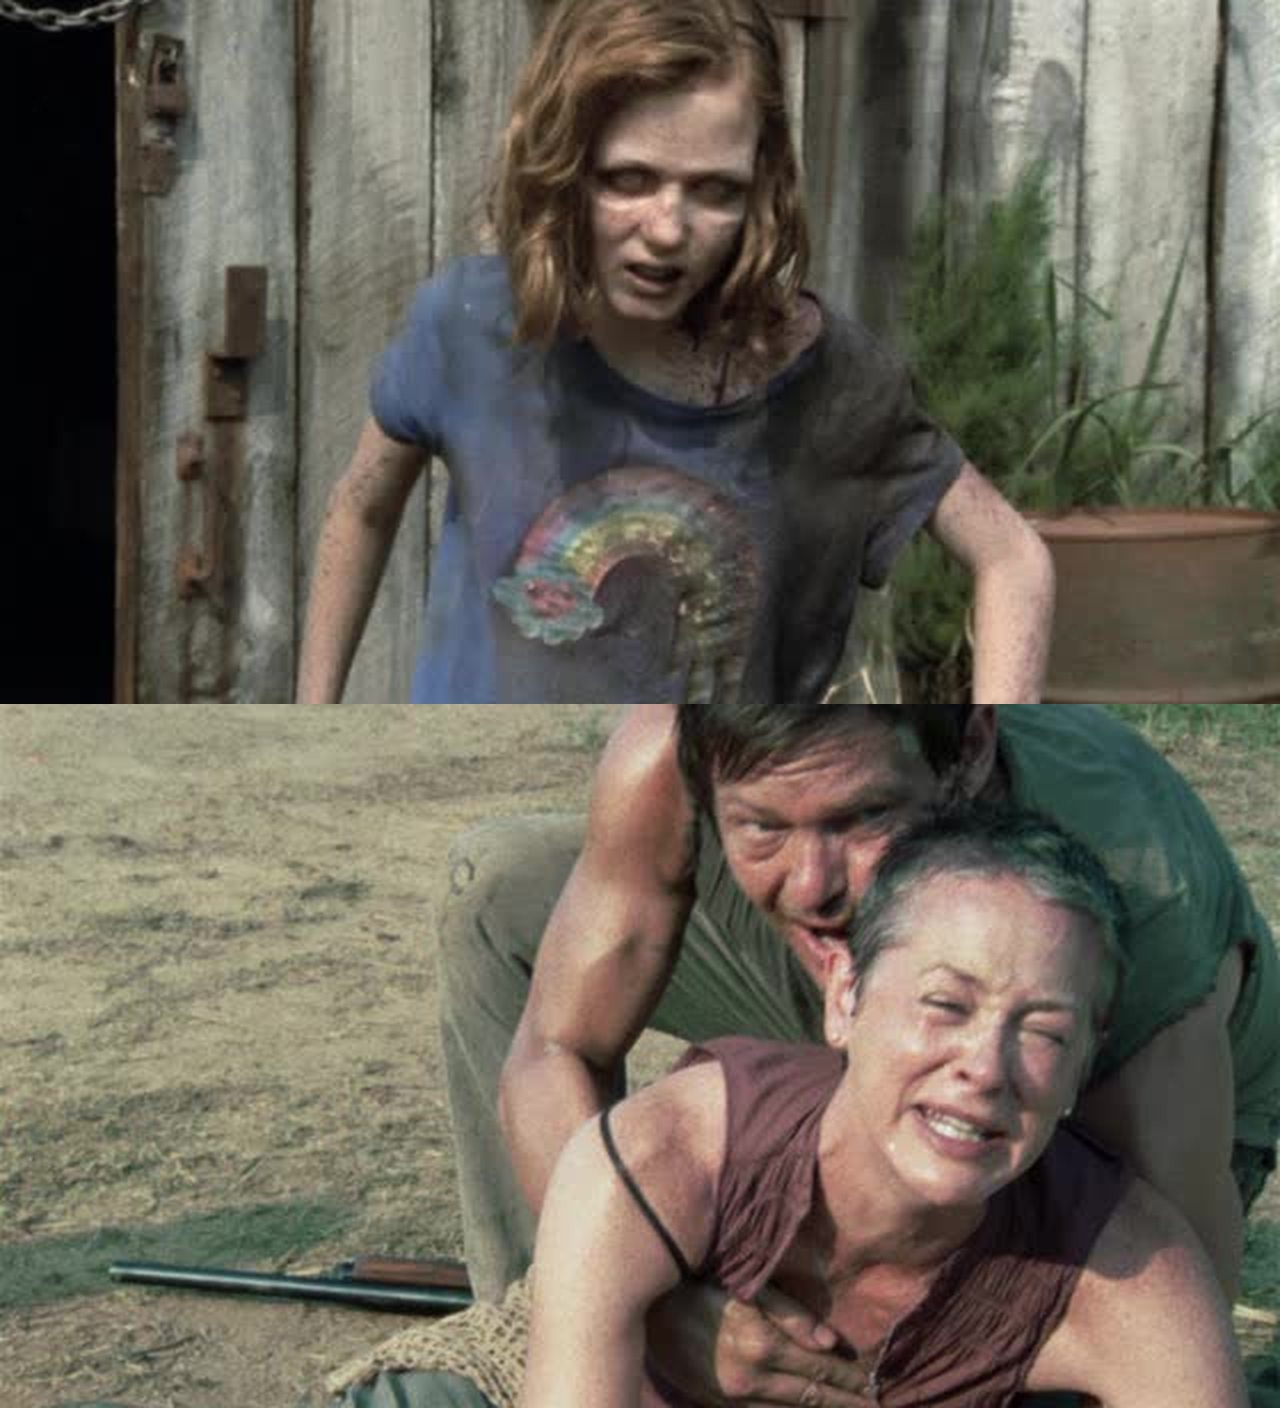 Oh no Sofia she was right there all the time right under their noses . She turned into a walker..... So sad. I love how Daryl and Carol connect and get eachother and really look out for eachother